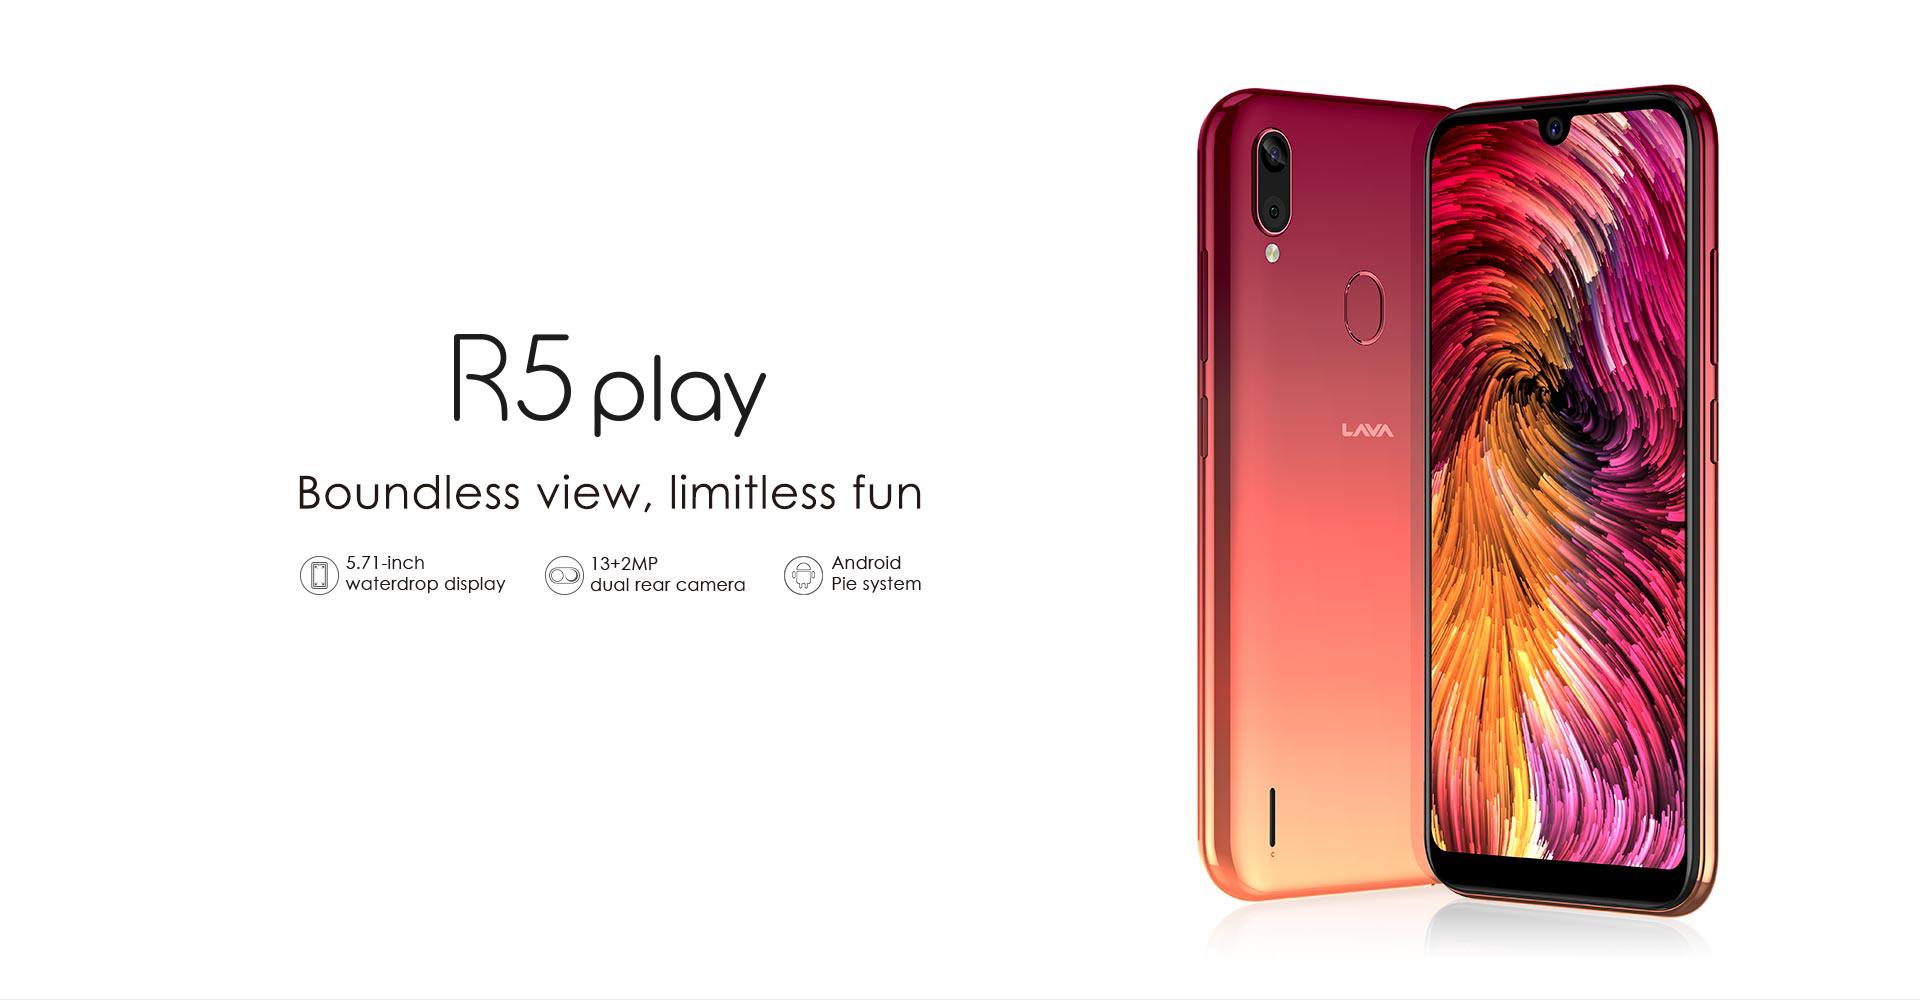 R5 play-Boundless view, limitless fun